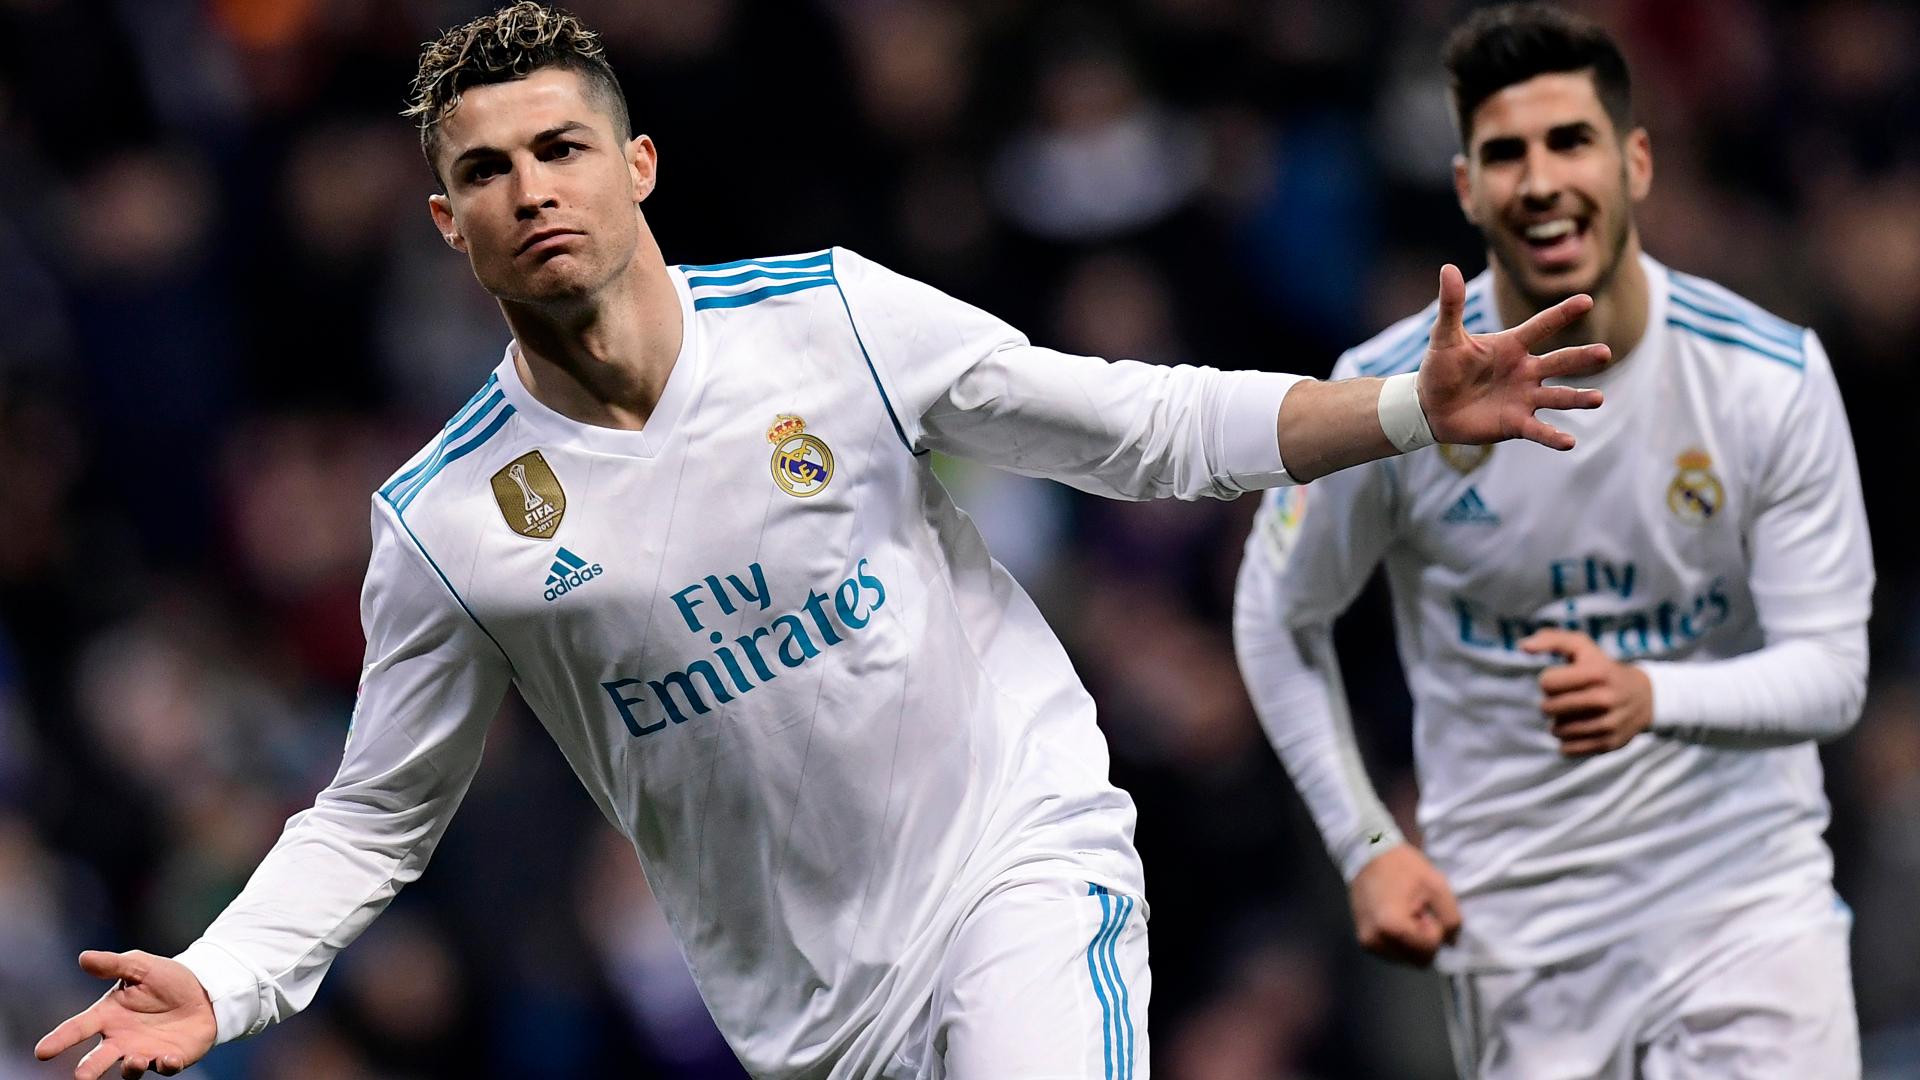 Real Madrid 6-3 Girona: 5 Talking Points